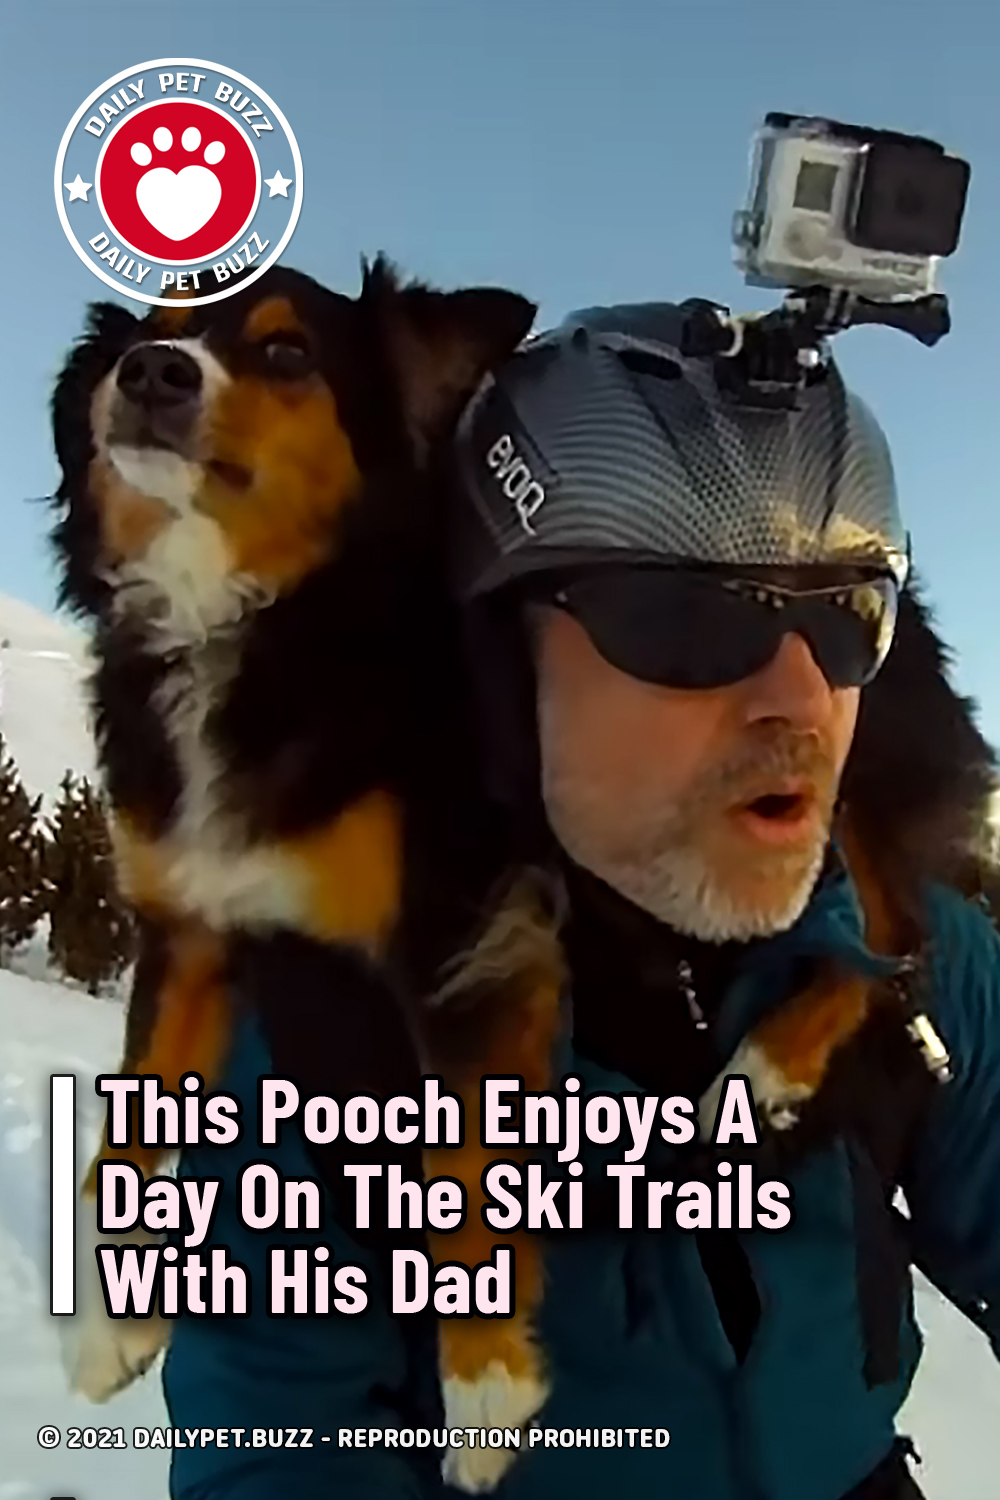 This Pooch Enjoys A Day On The Ski Trails With His Dad